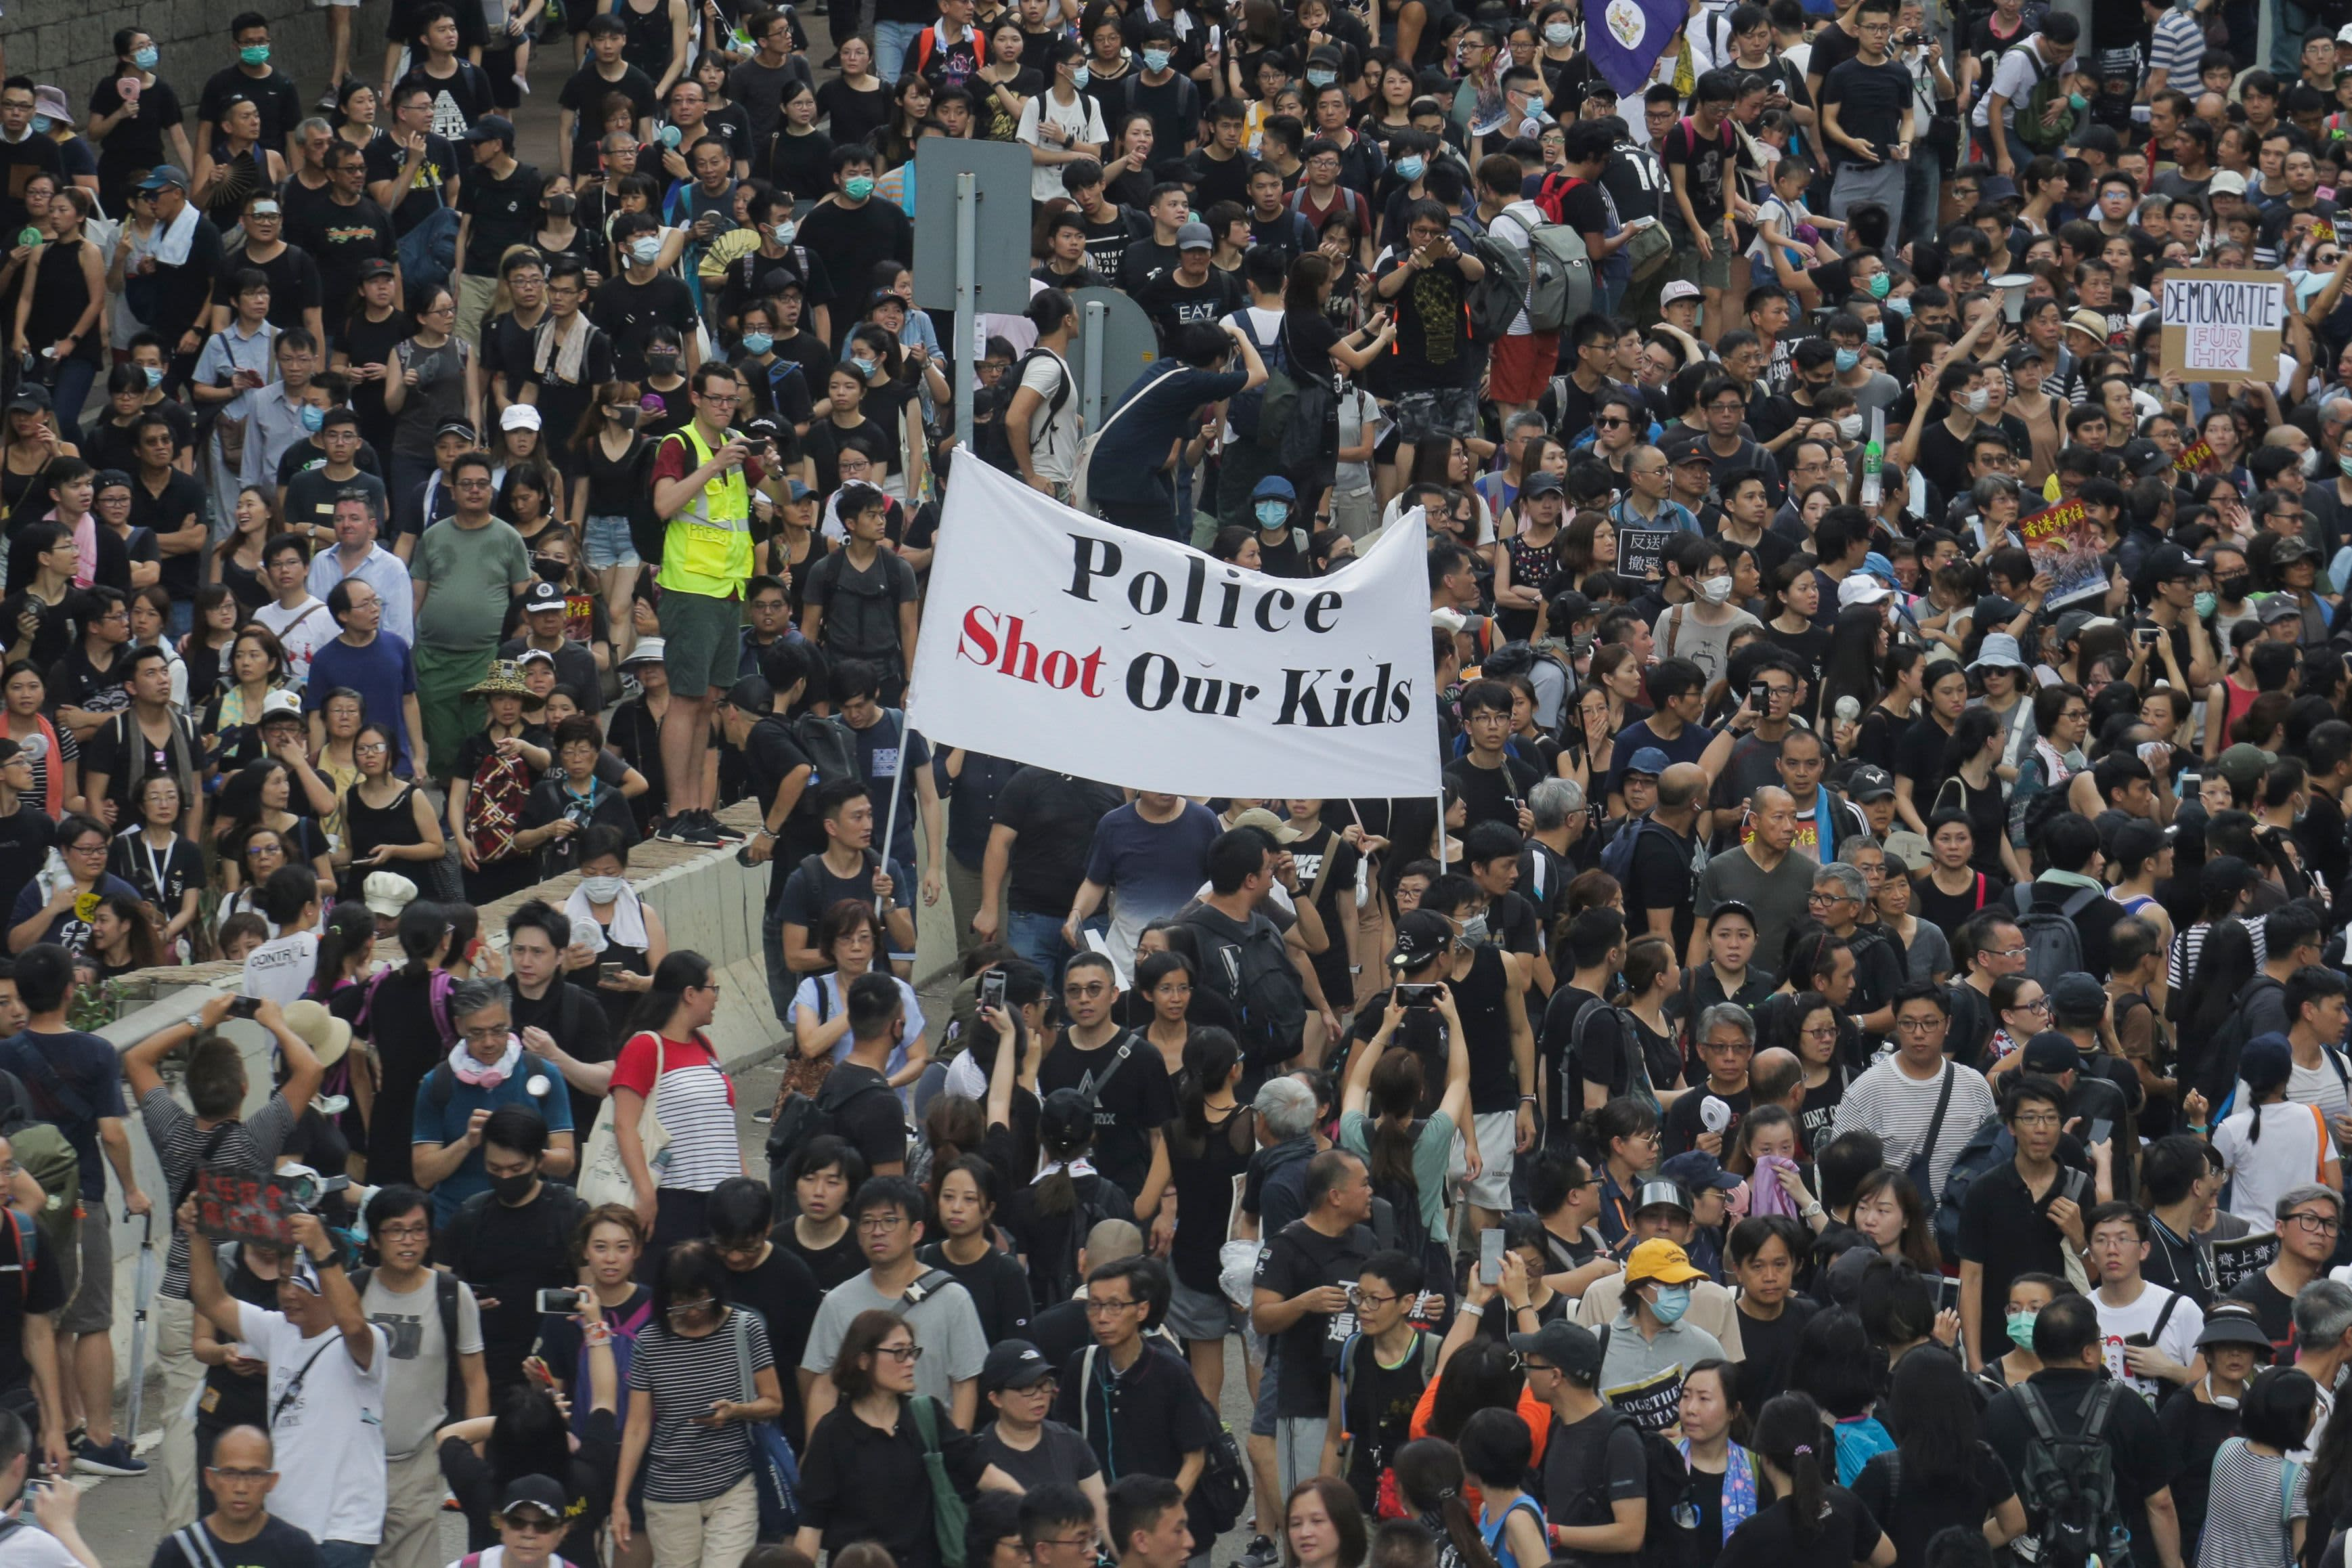 Clashes break out as Hong Kong protesters escalate fight thumbnail